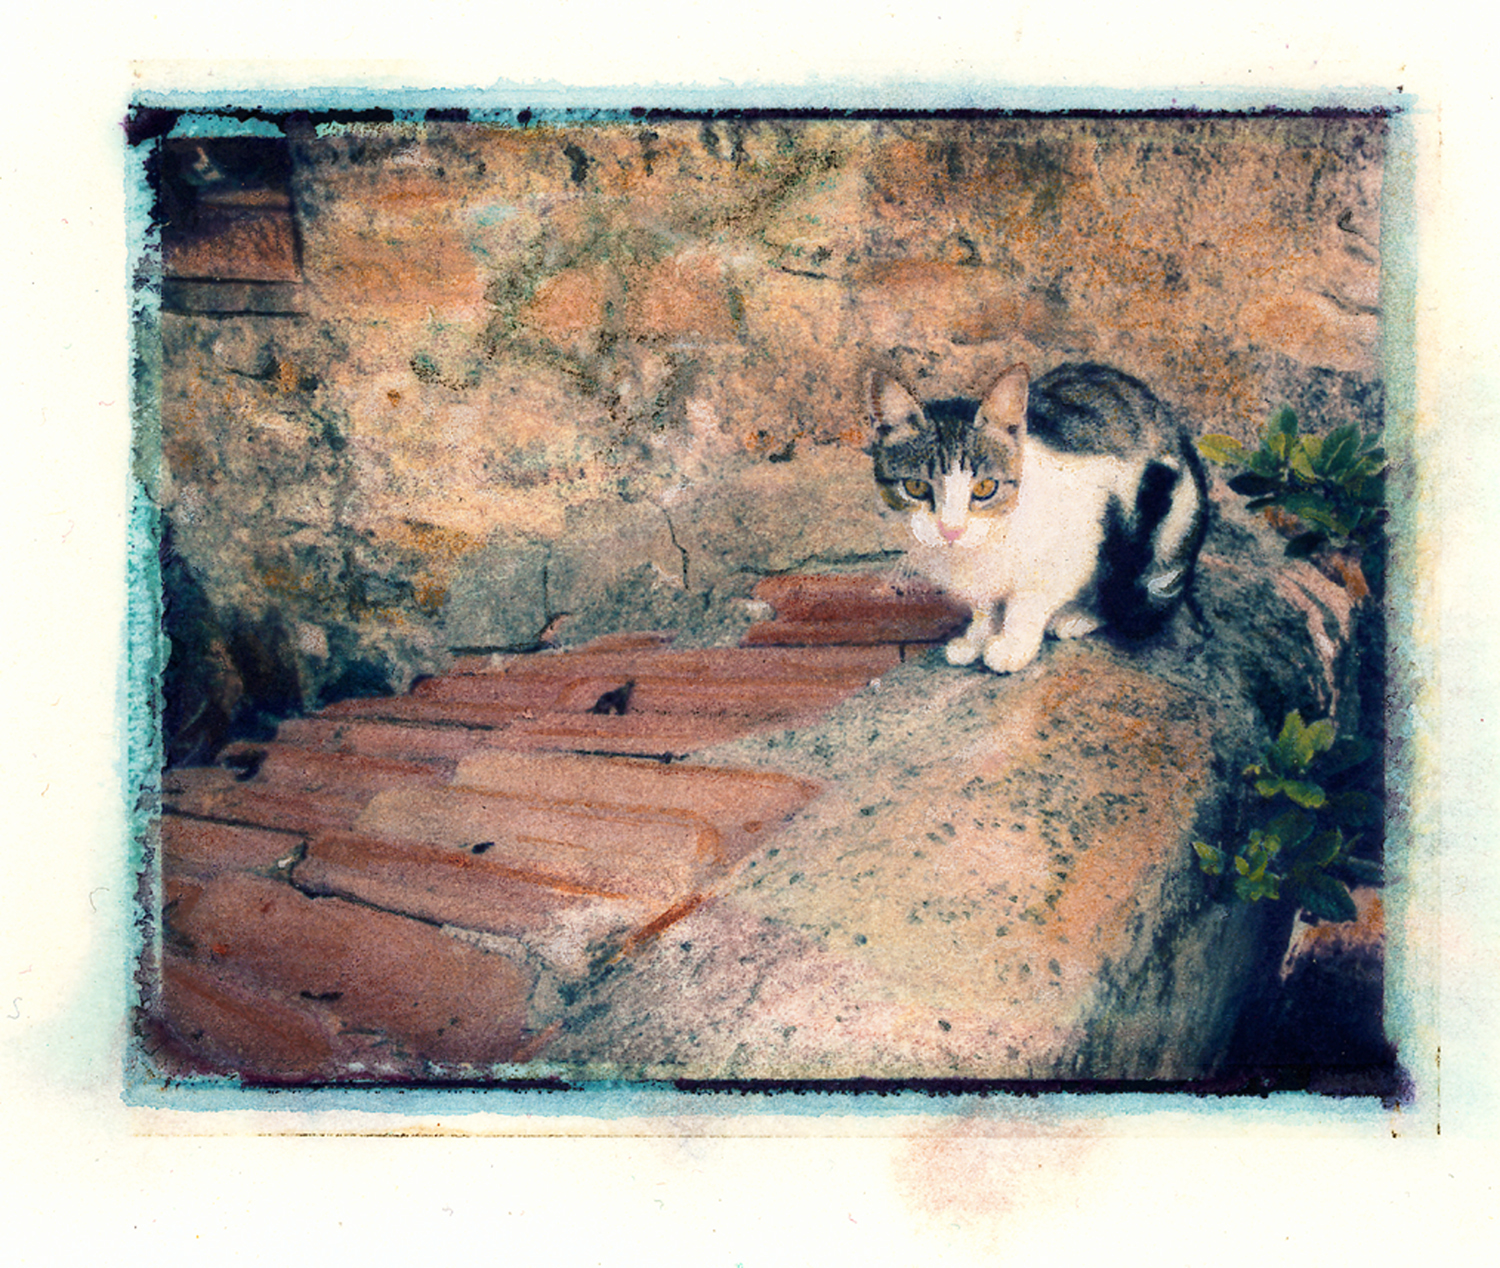 Cat on Roof, Tuscany